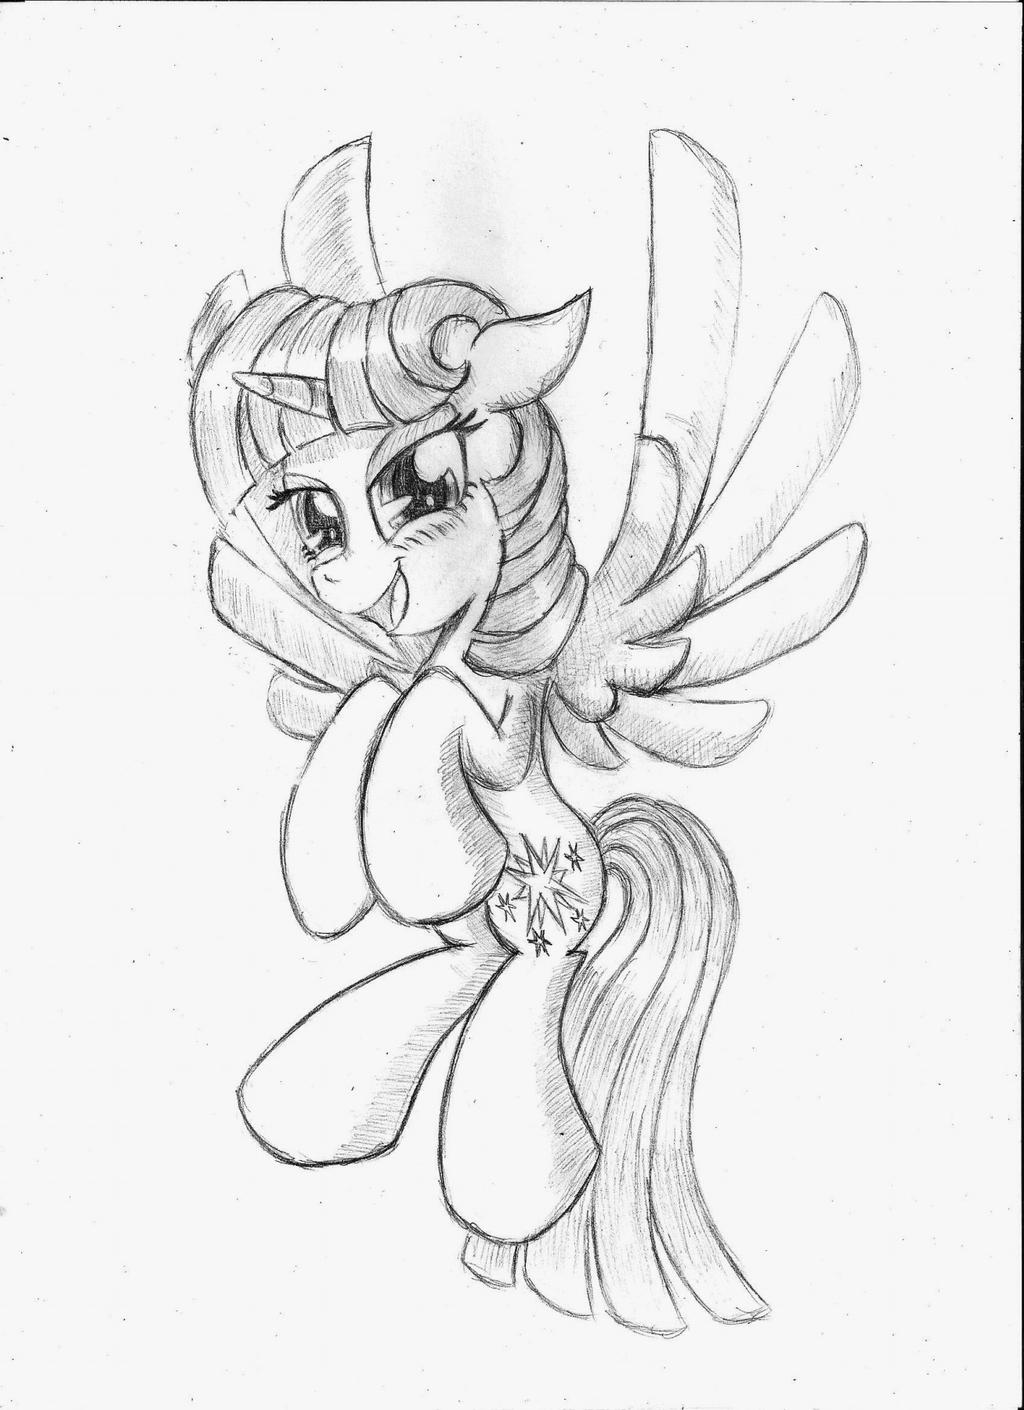 unicorn with wings by piterq12 on deviantart